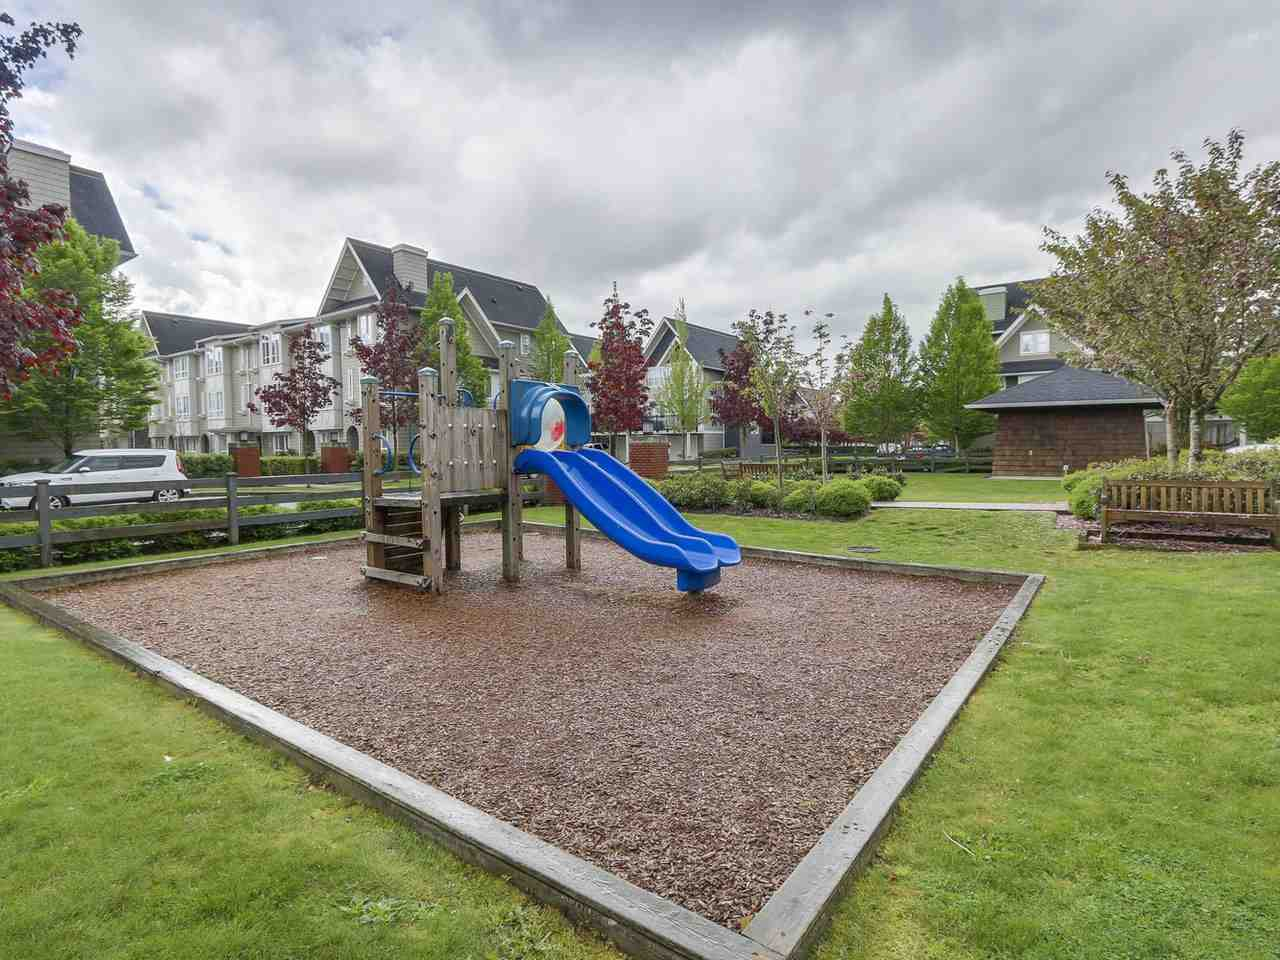 Photo 20: # 110 - 2418 Avon  Place in Port Coquitlam: Riverwood Townhouse for sale : MLS(r) # R2166312